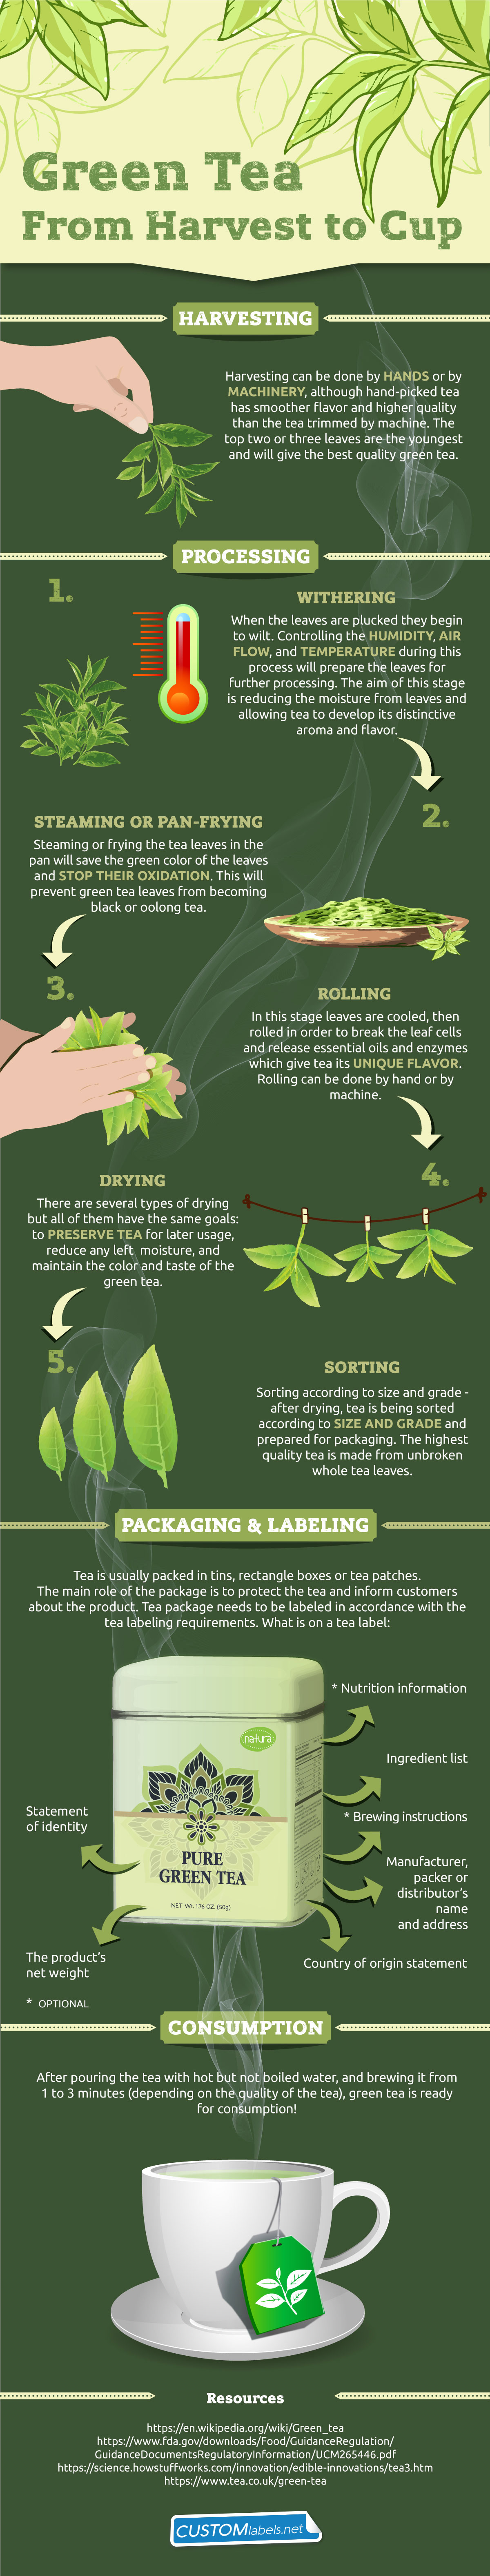 green-tea-production-journey-infographic